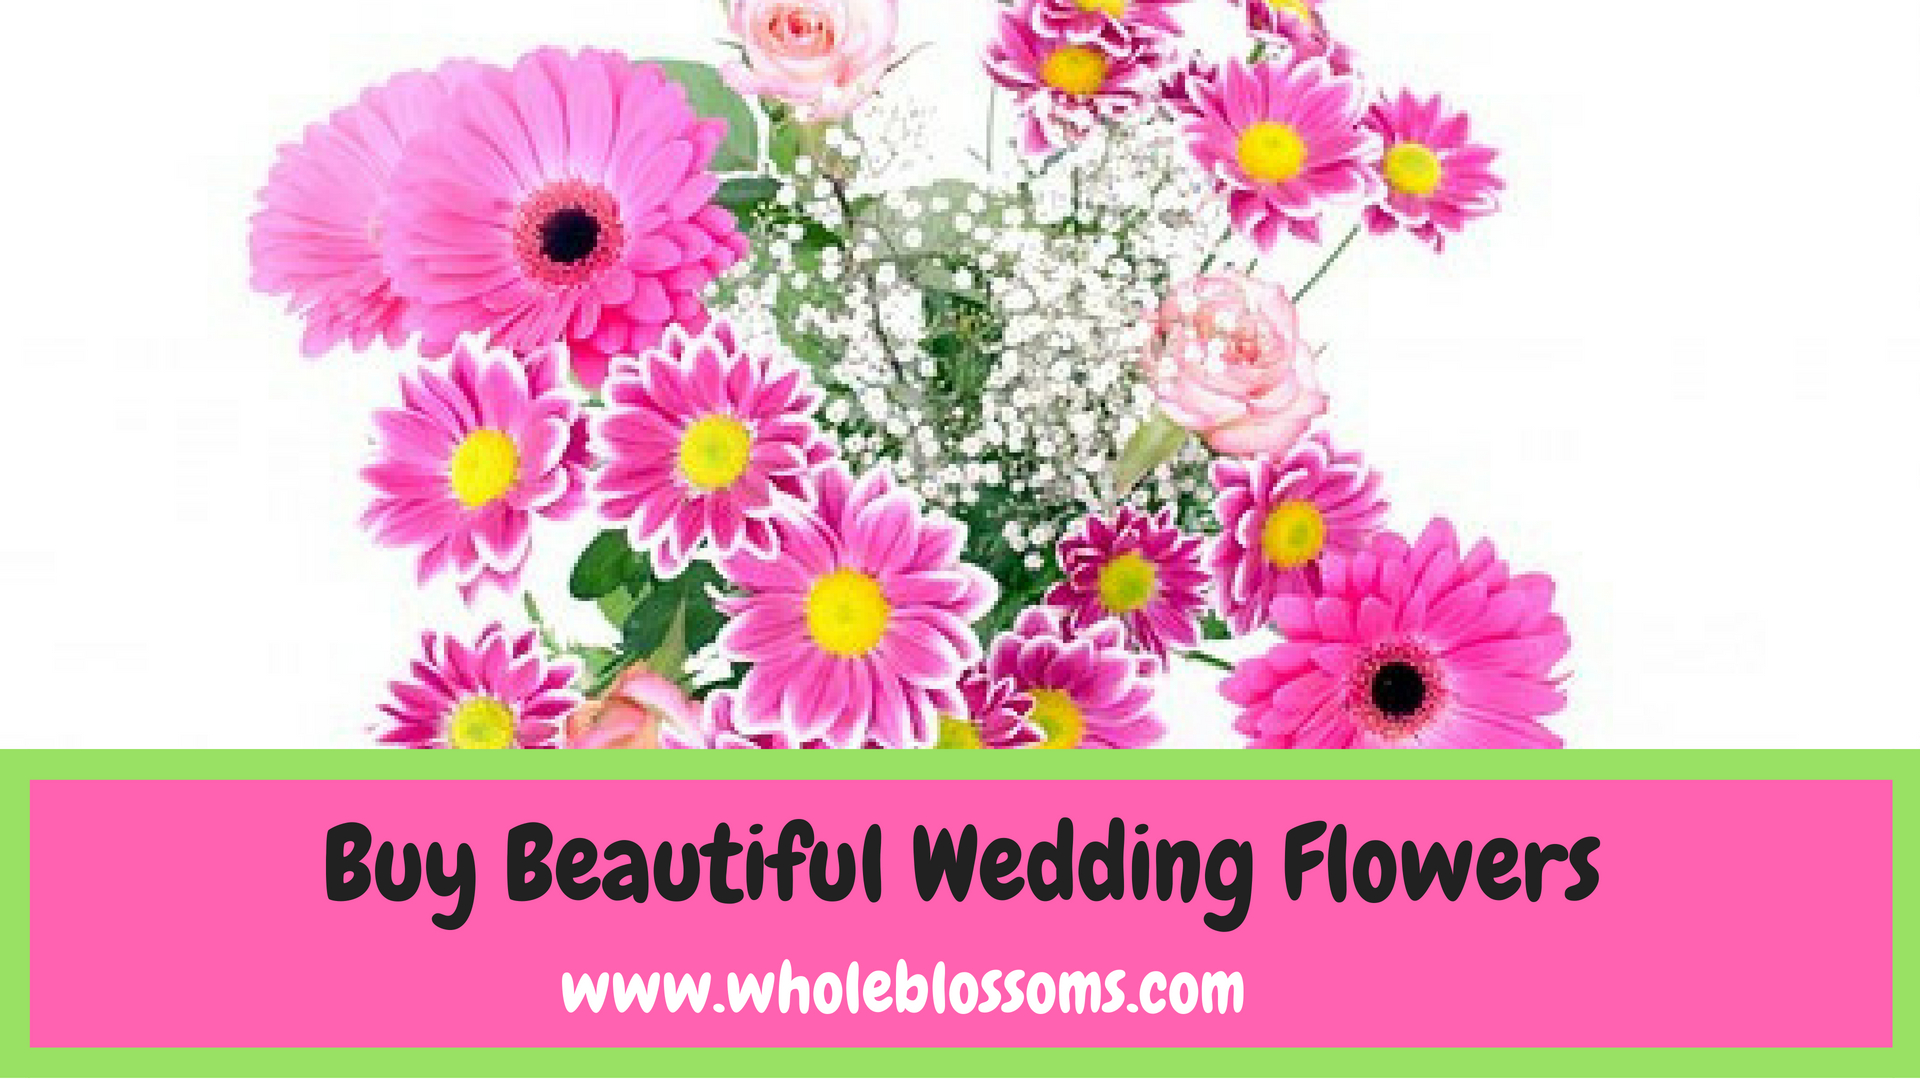 Pennysaver whole blossoms provides luxury wedding flowers online whole blossoms provides luxury wedding flowers online izmirmasajfo